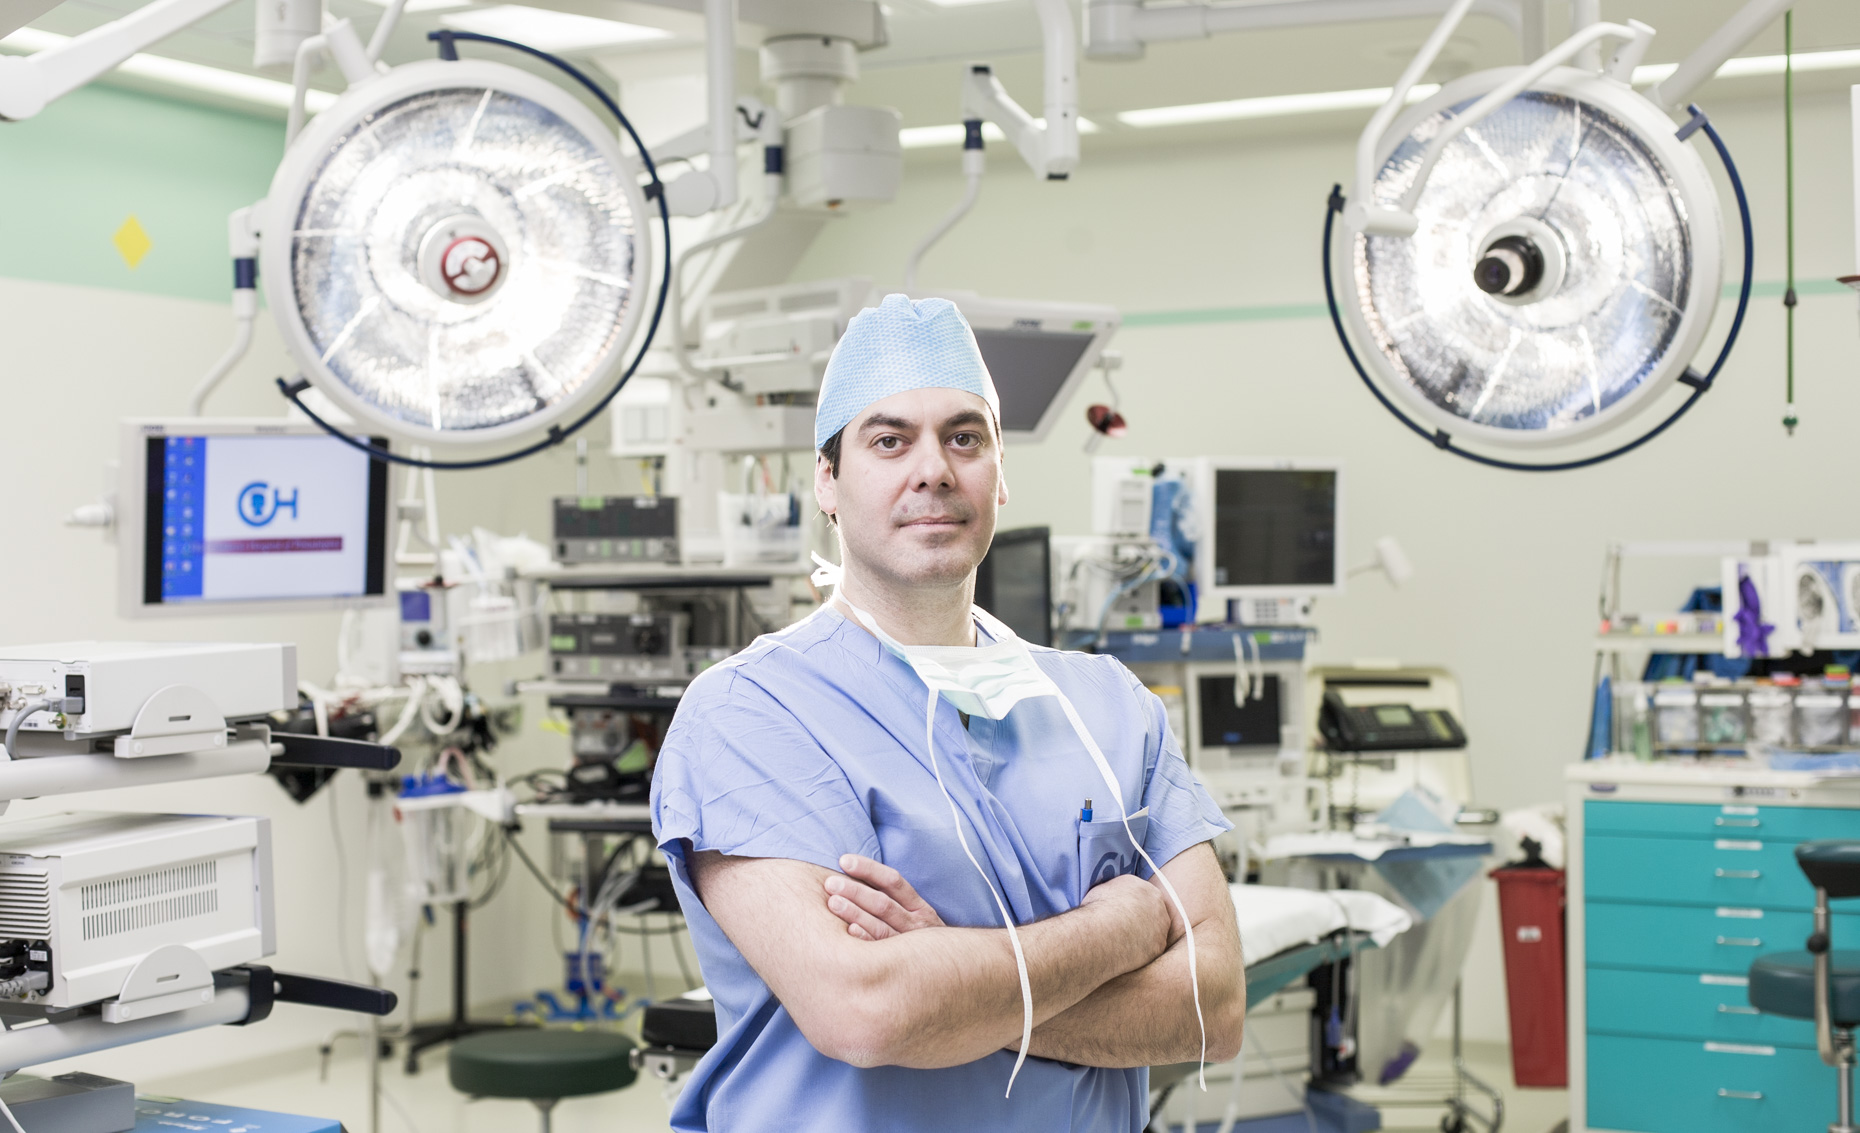 A portrait of a surgeon.